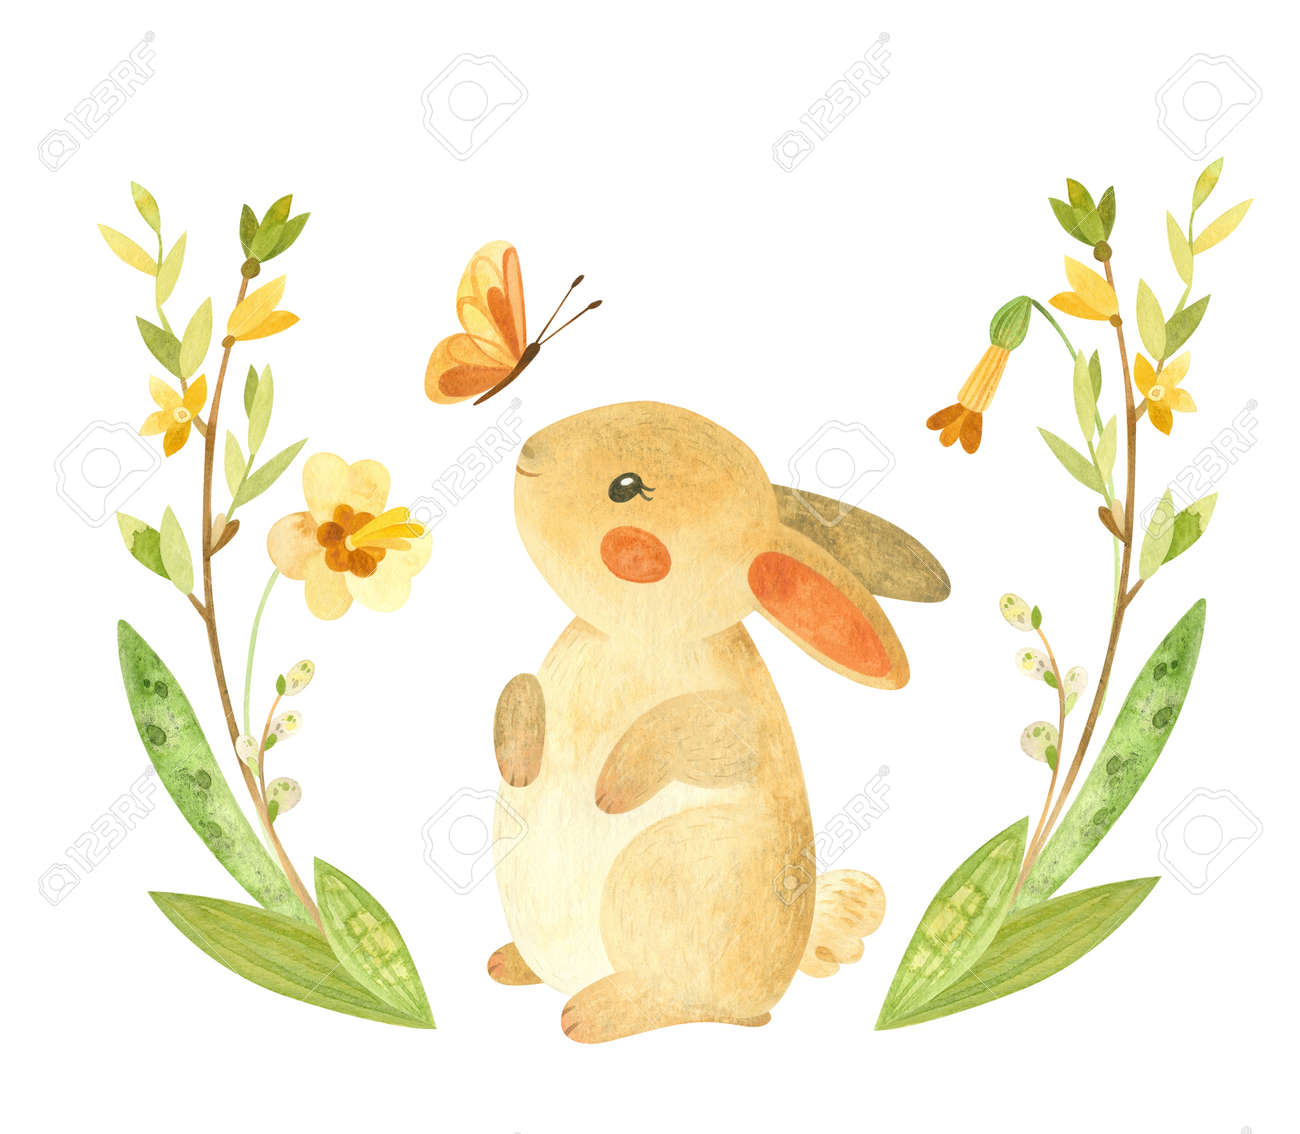 Cute Easter Bunny with butterfly and flower wreath. Easter or children's themed birthday card template with a rabbit and spring flowers. Watercolor clipart for cards, posters, banners - 164126819